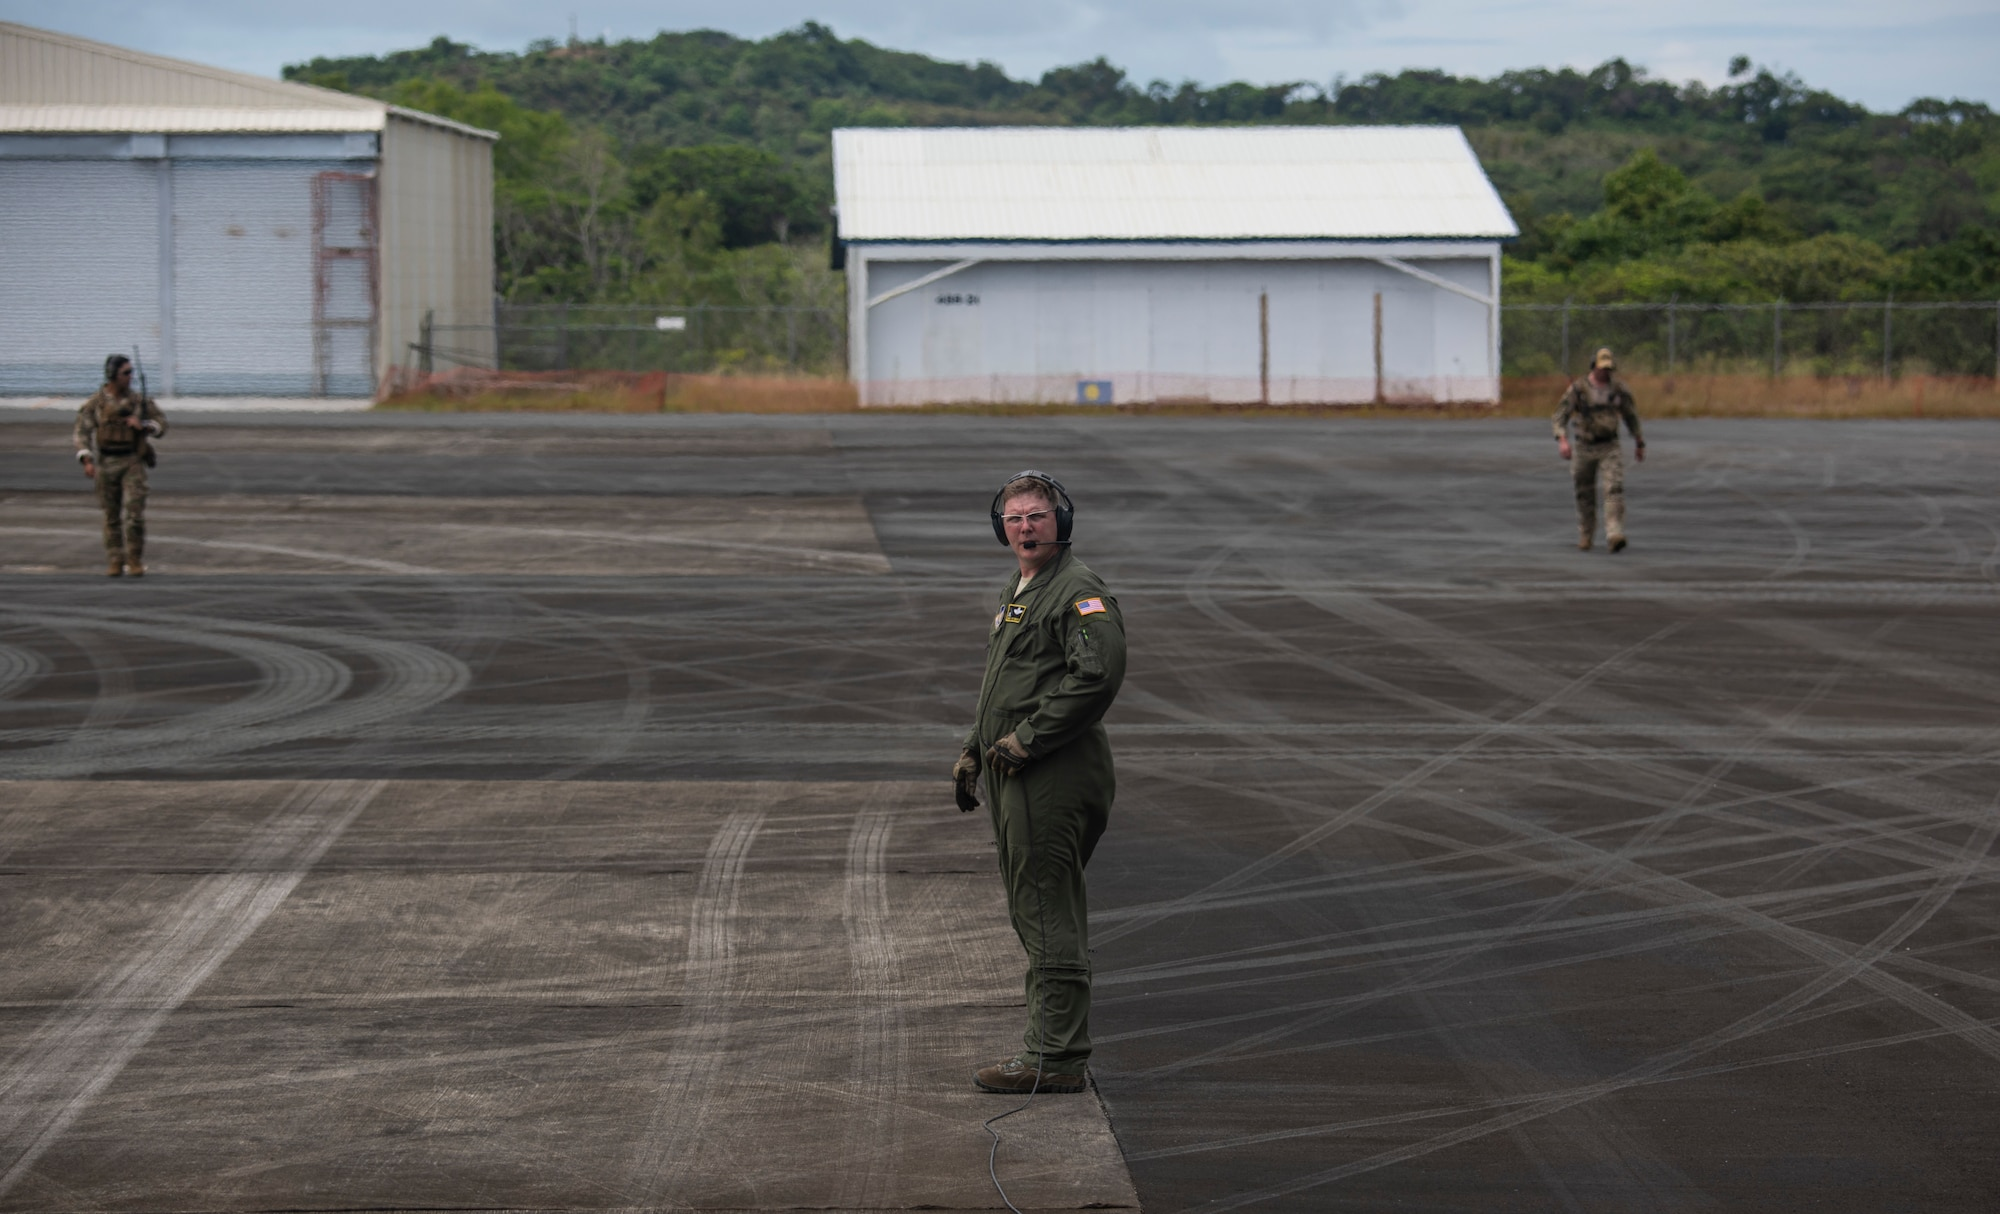 U.S. Chief Master Sgt. Lester Farley, a loadmaster assigned to the 36th Airlift Squadron, Yokota Air Base, Japan, calls in two 736th Security Forces Airmen from a security perimeter before takeoff at Palau International Airport, Palau, during a Dynamic Force Employment, Nov. 23, 2020. DFE is an operational platform that allows our forces to be strategically predictable and operationally unpredictable. The U.S. Air Force is postured and ready to respond to crises and contingencies throughout the U.S. Indo-Pacific Command, contributing to regional stability and a free and open Indo-Pacific. (U.S. Air Force photo by Senior Airman Michael S. Murphy)